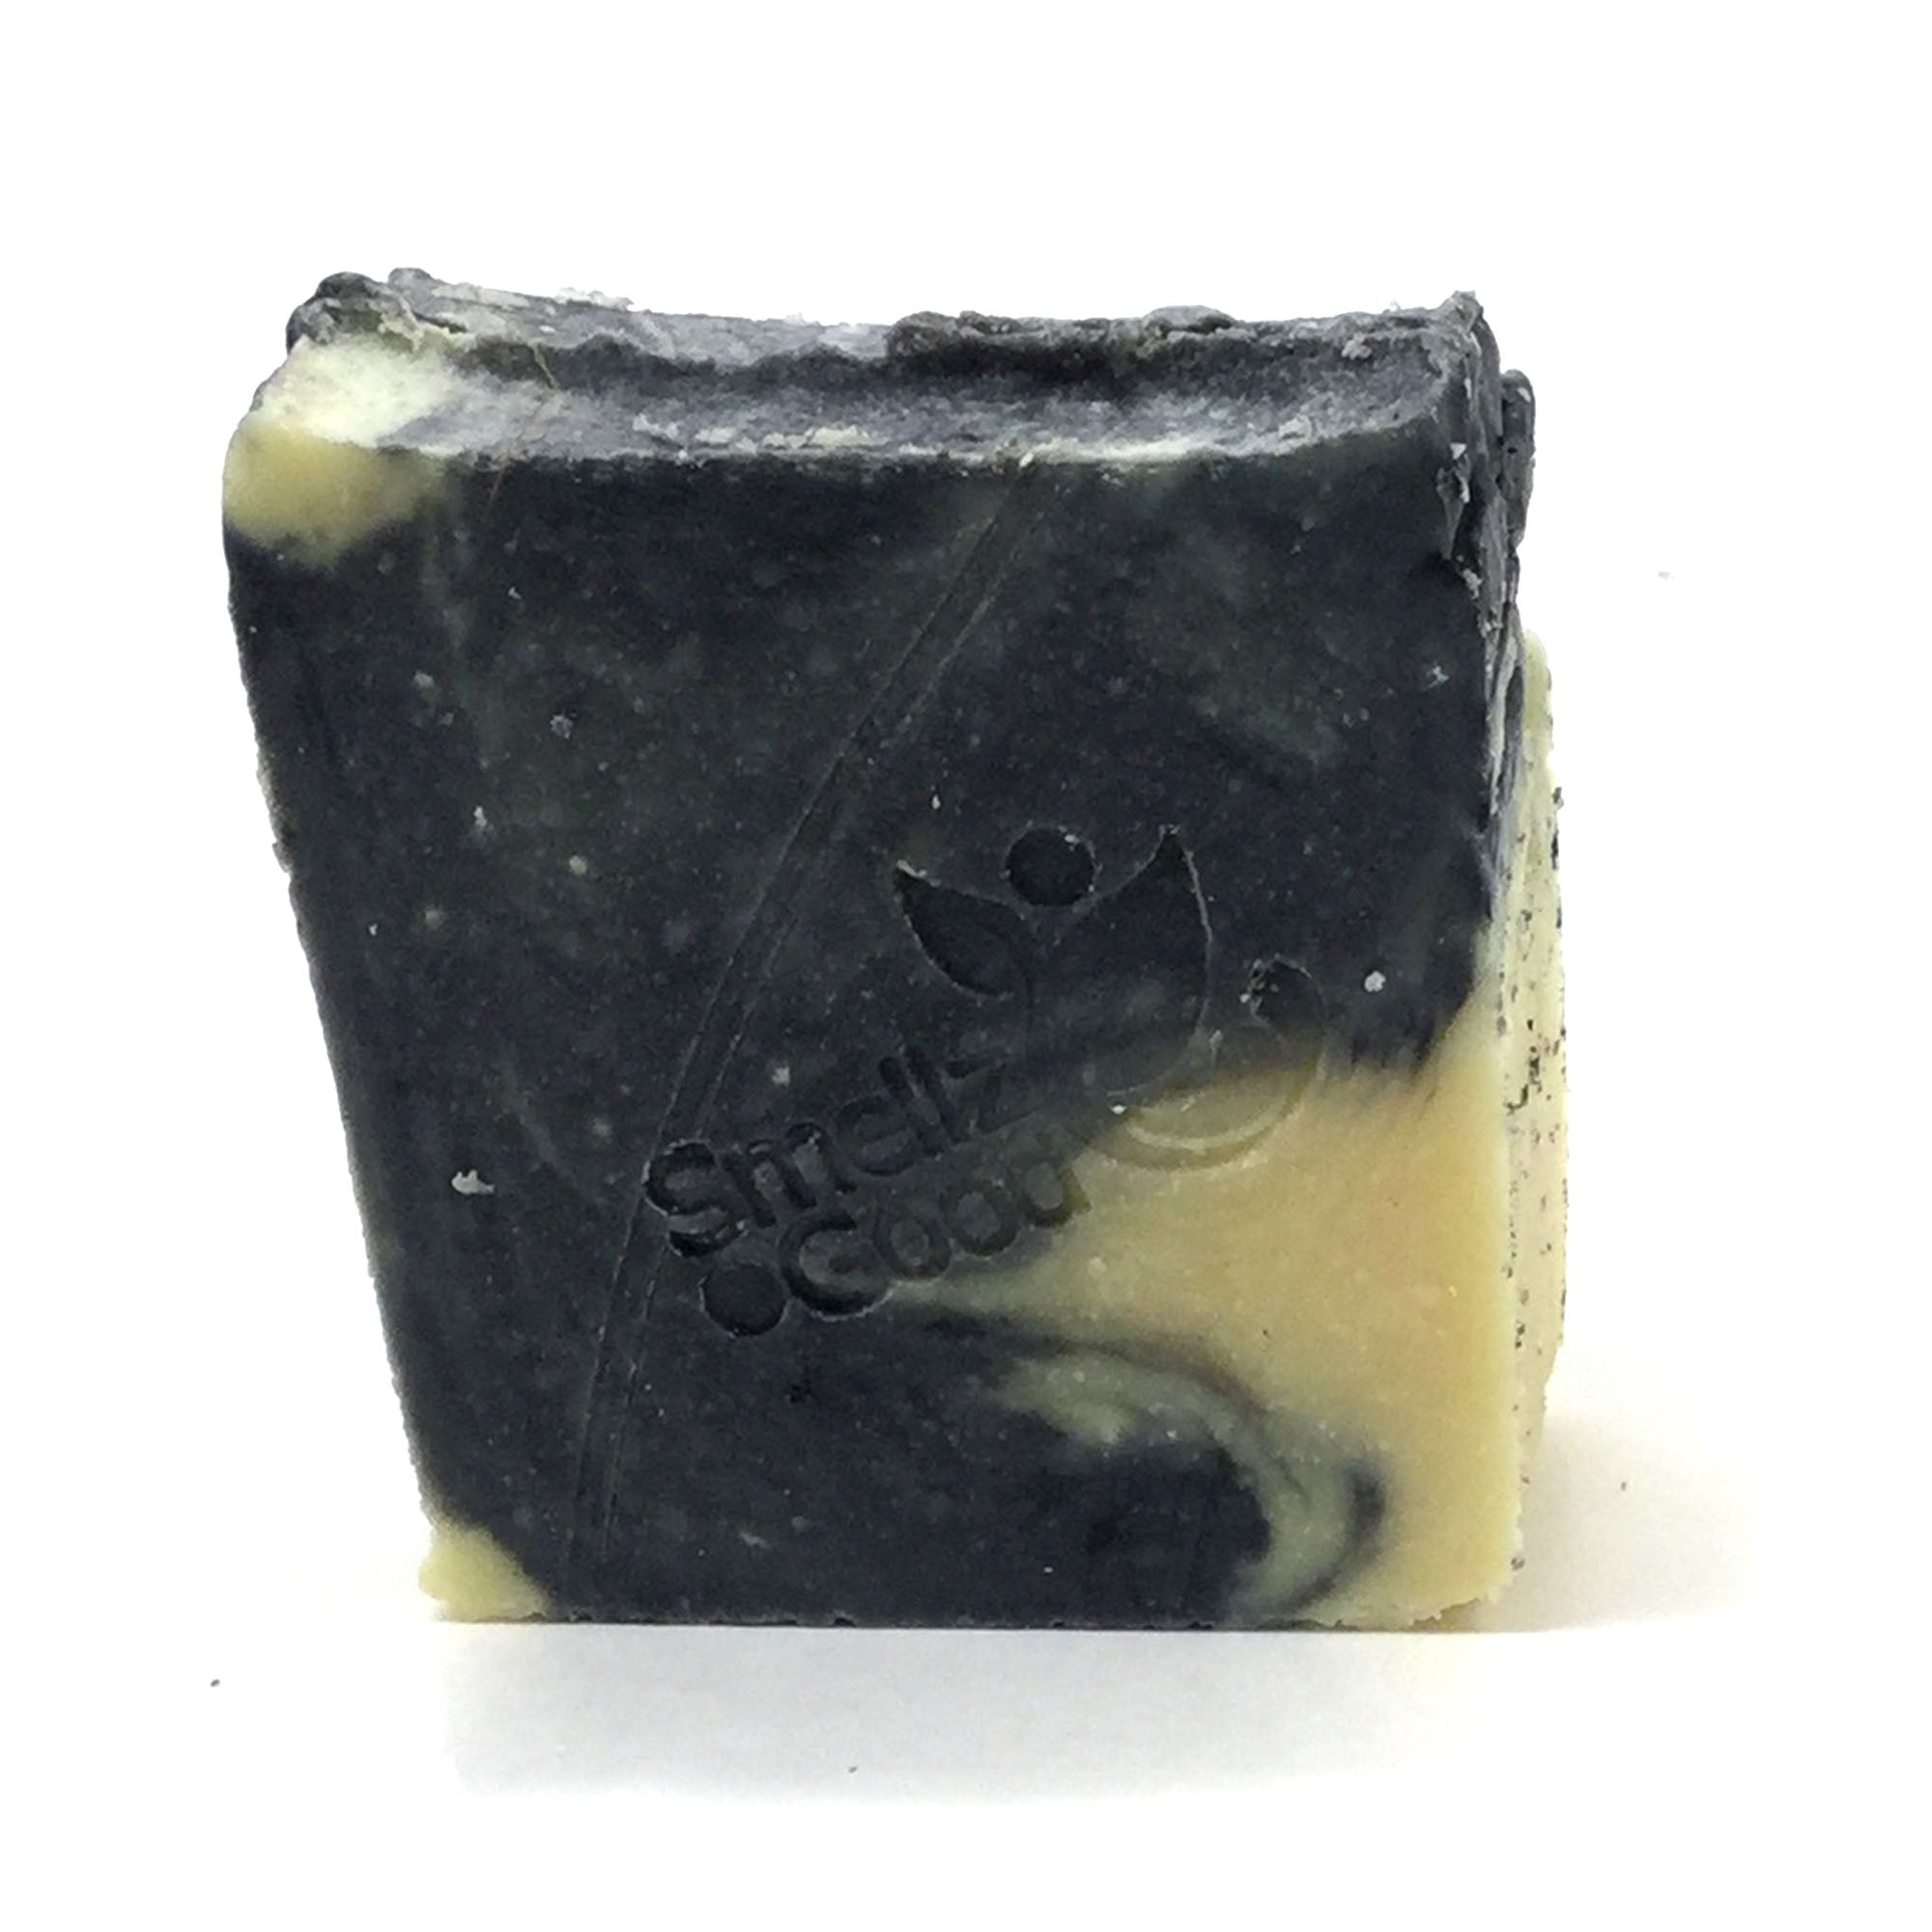 Moisturizing Goat Milk Soap | Activated Charcoal